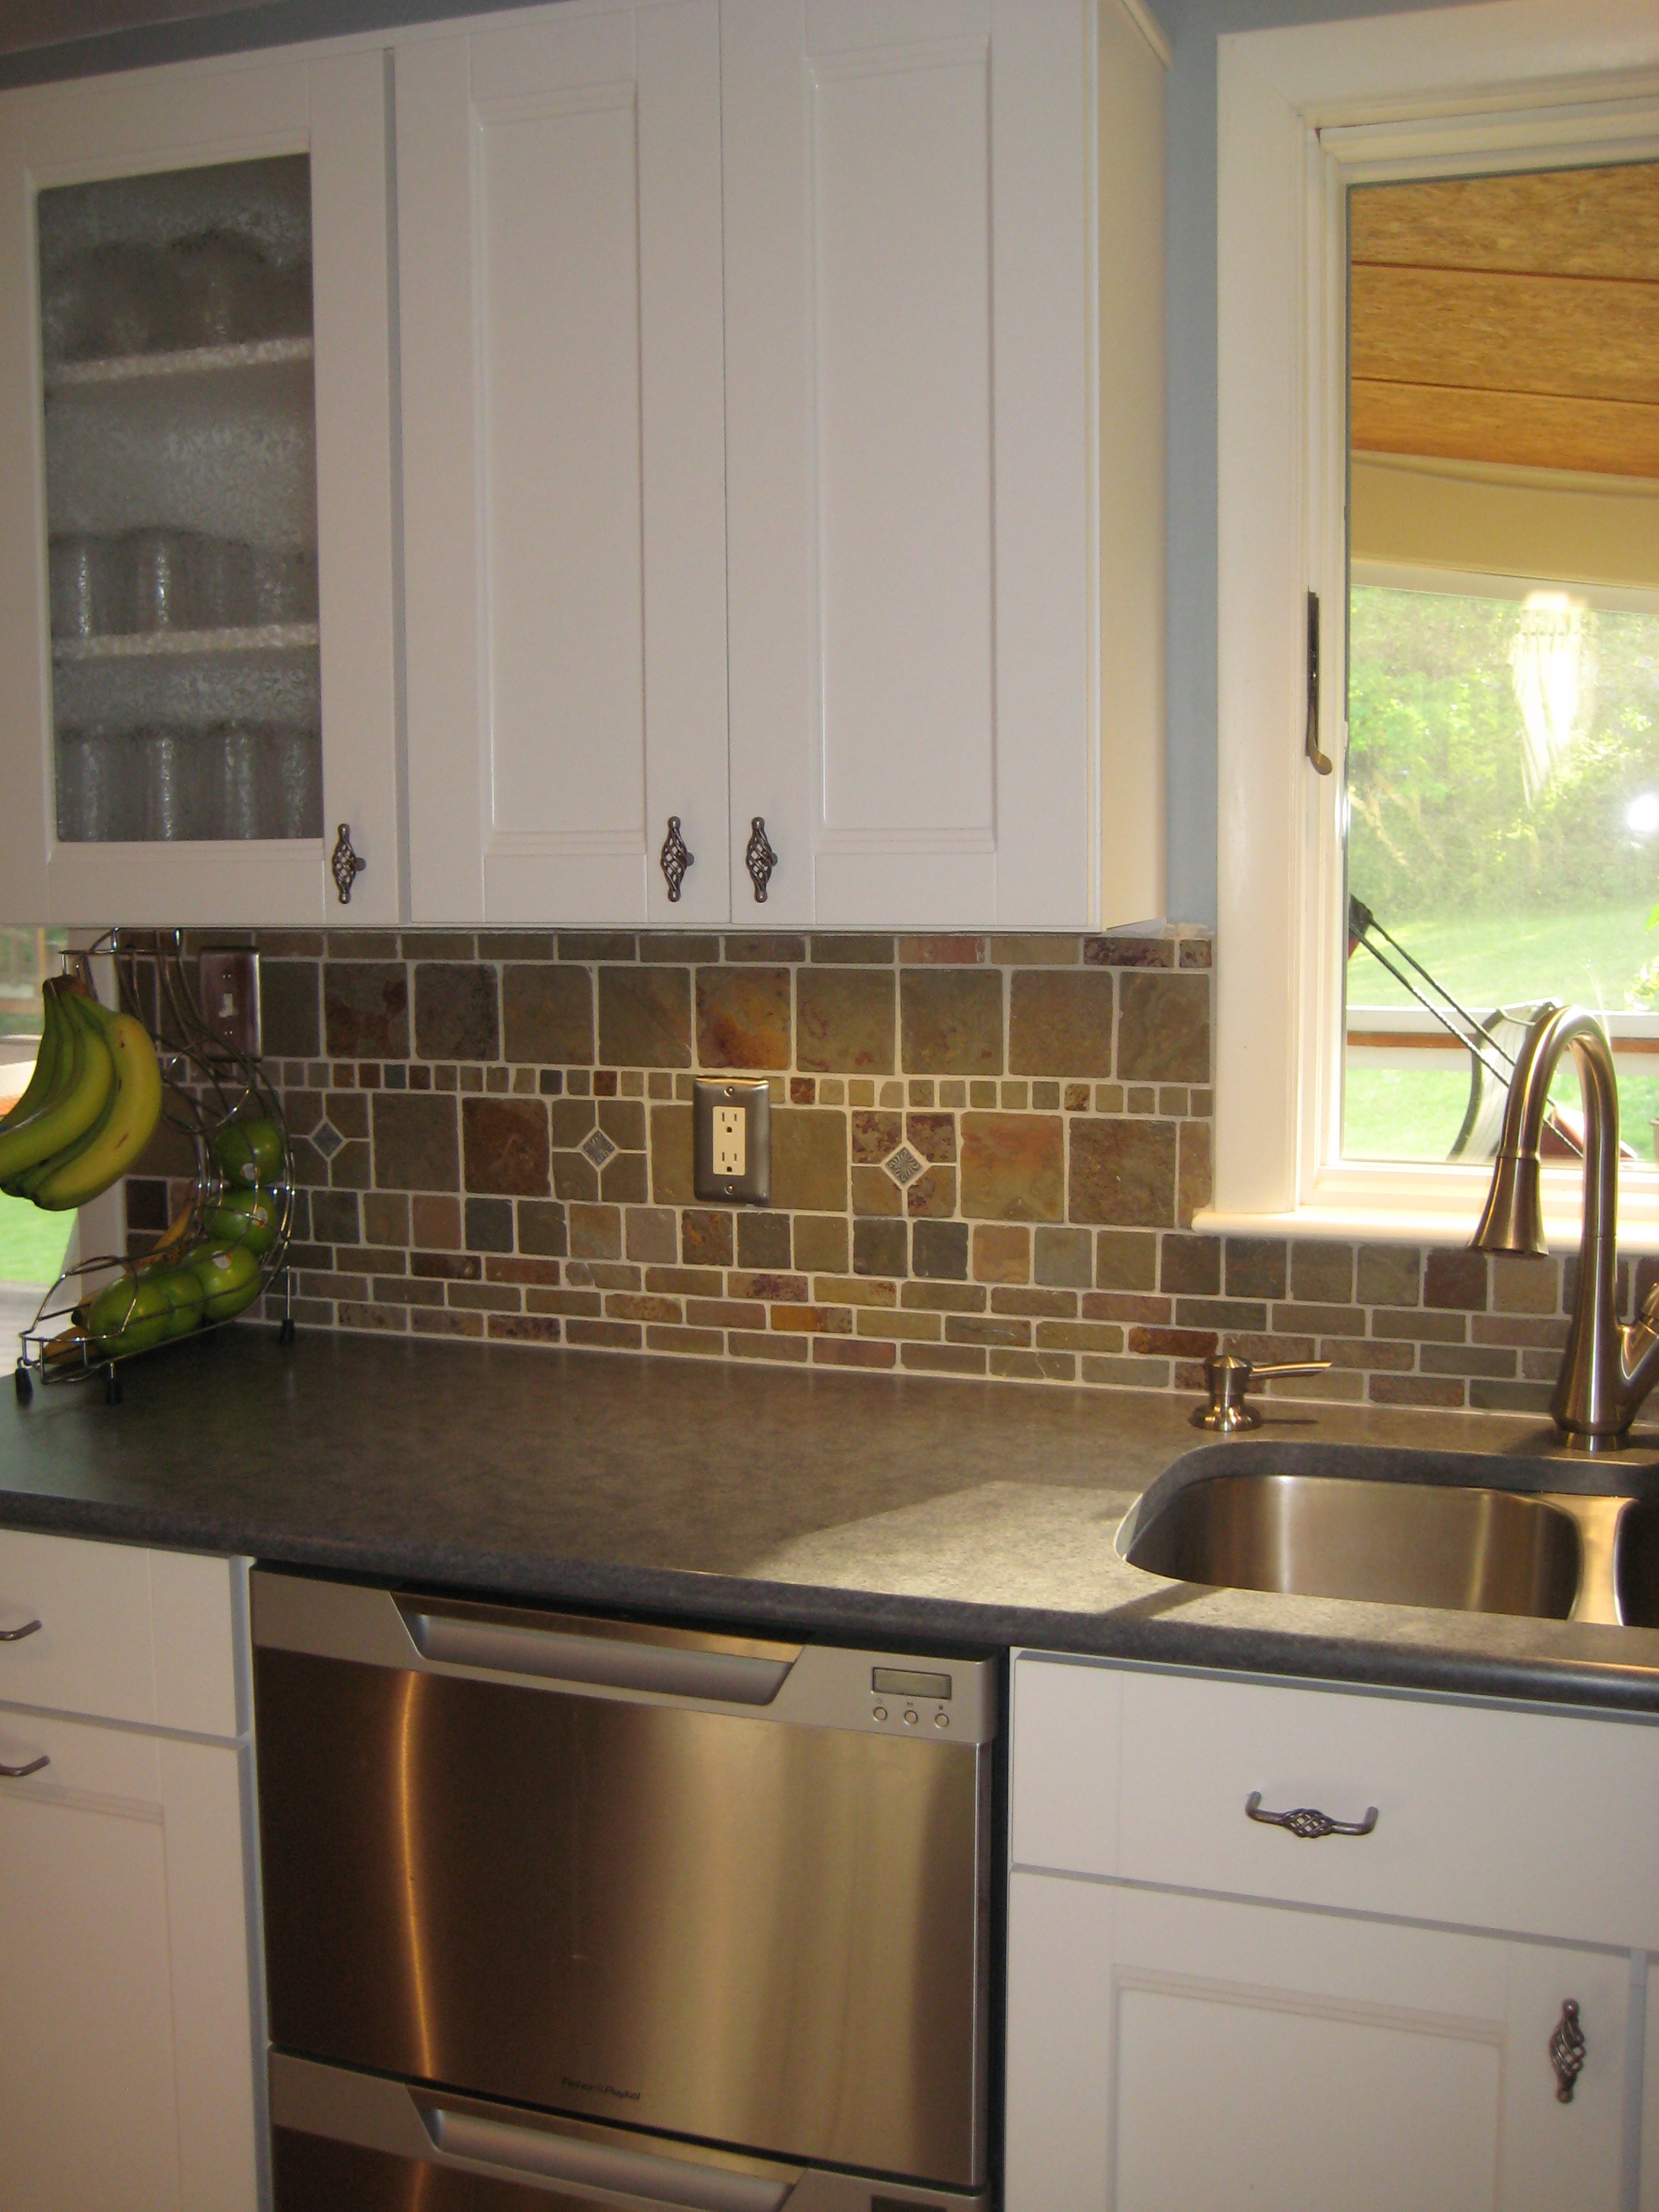 1000 Images About Cabinetry On Pinterest Kitchen Backsplash Travertine Backsplash And Dark